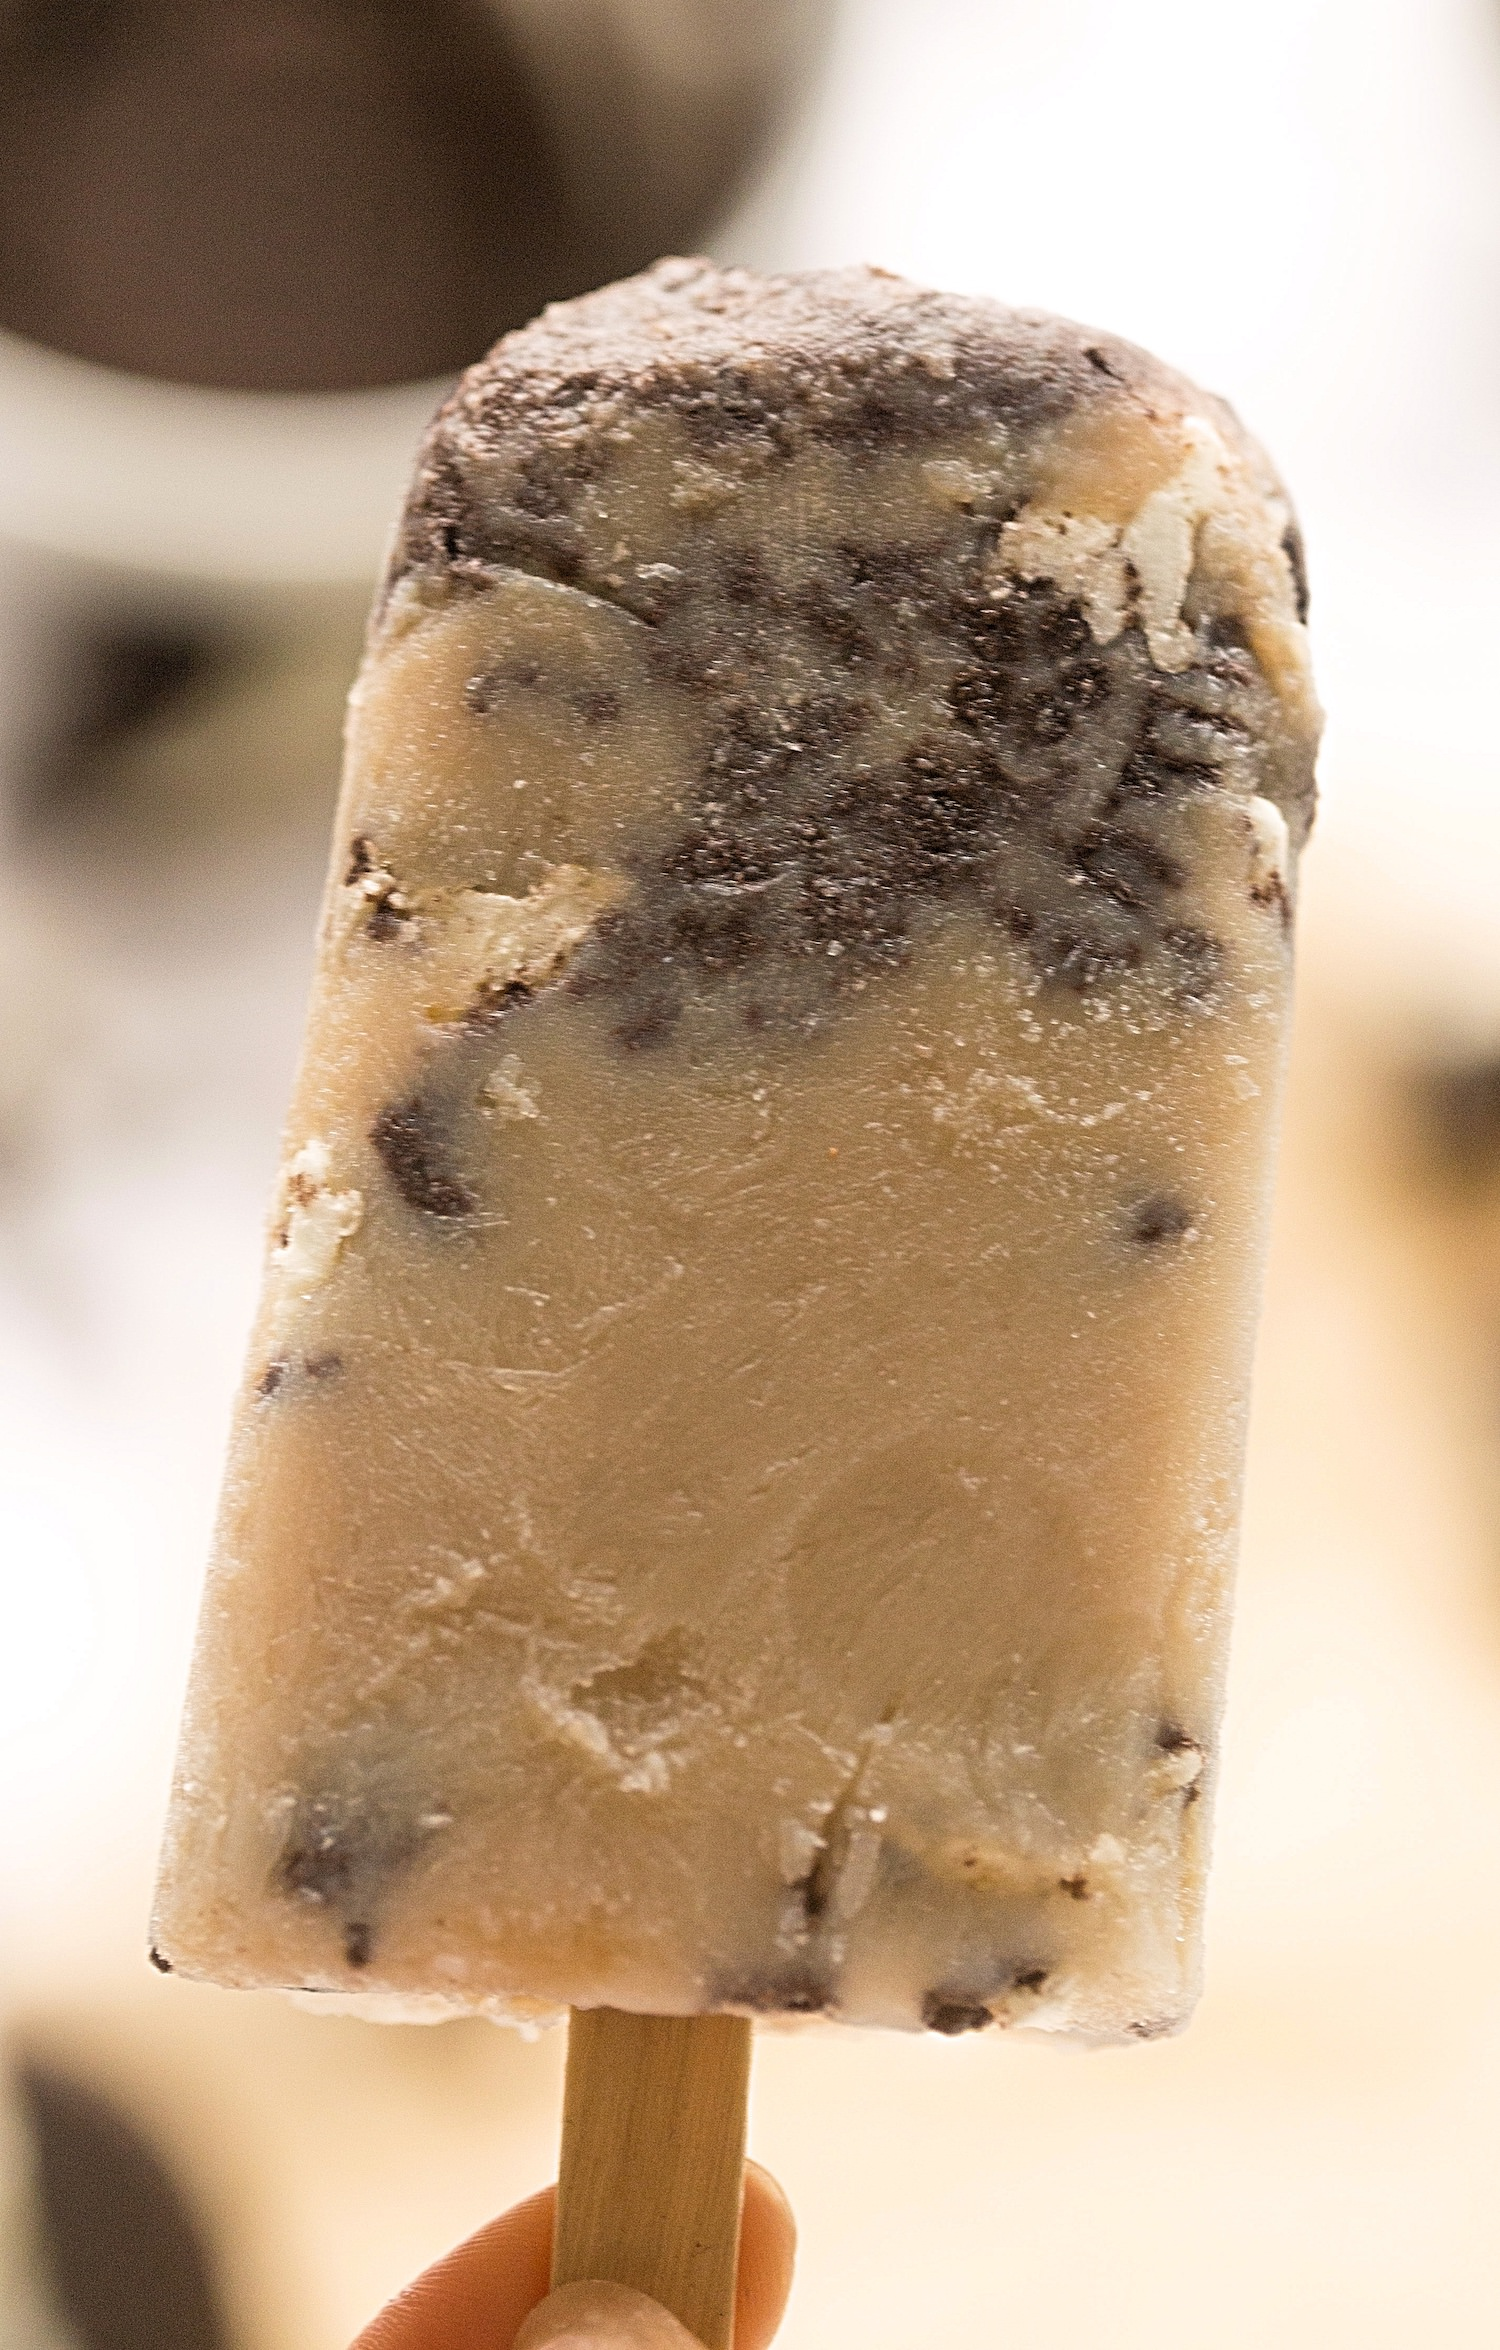 5-Ingredient Cookie Dough Popsicles: creamy, milky popsicles that taste like cookie dough. Packed with chocolate chips + Oreos and so easy! | TrufflesandTrends.com